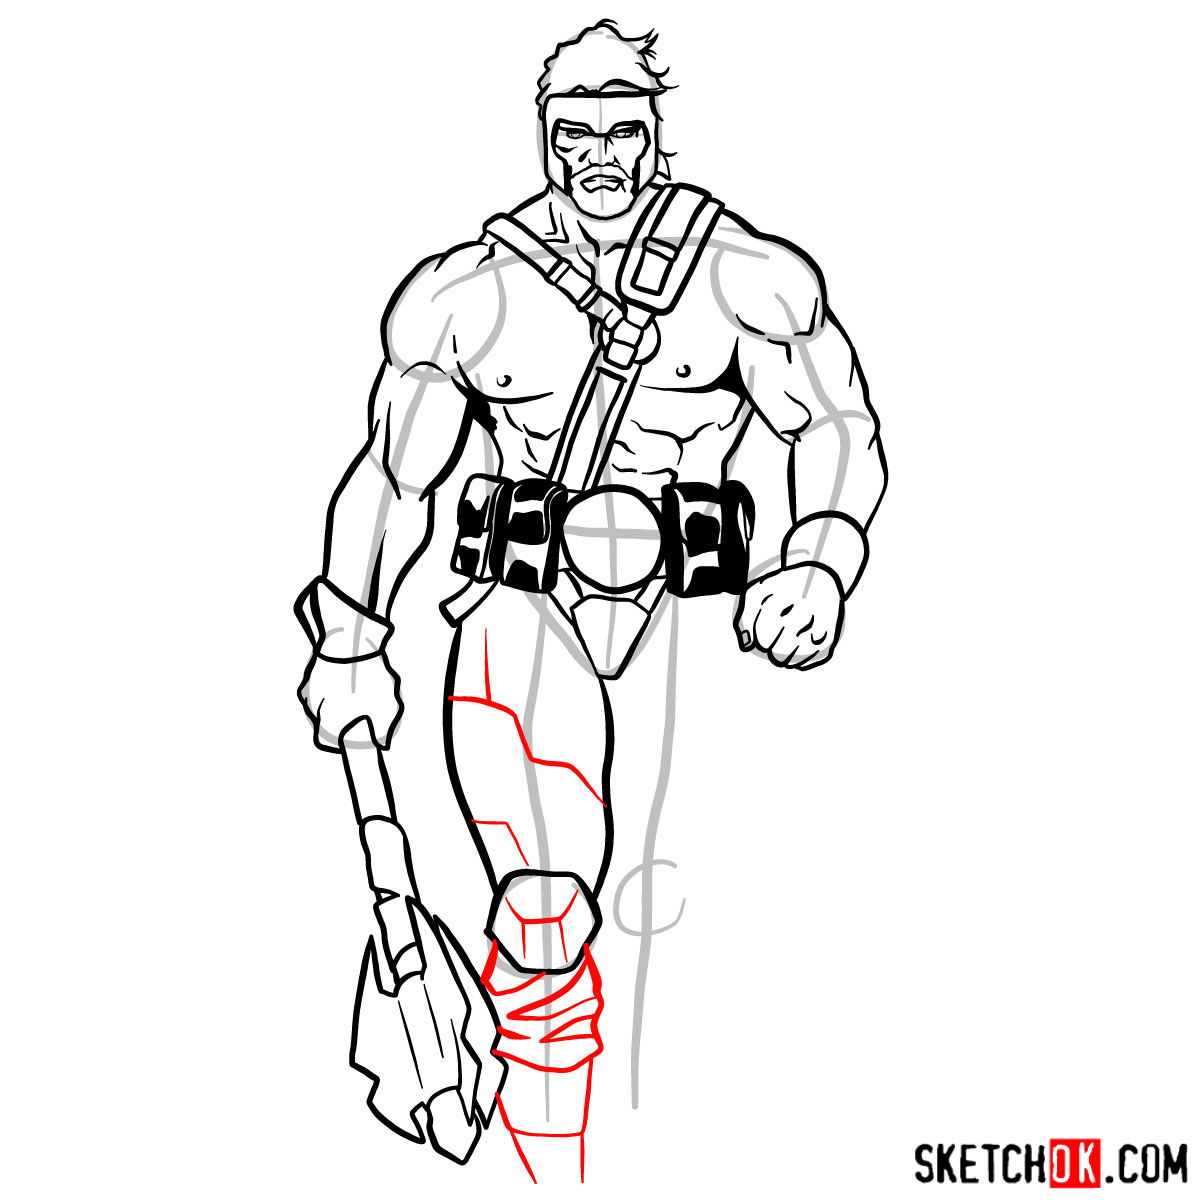 How to draw Hercules - Marvel Comics hero - step 12